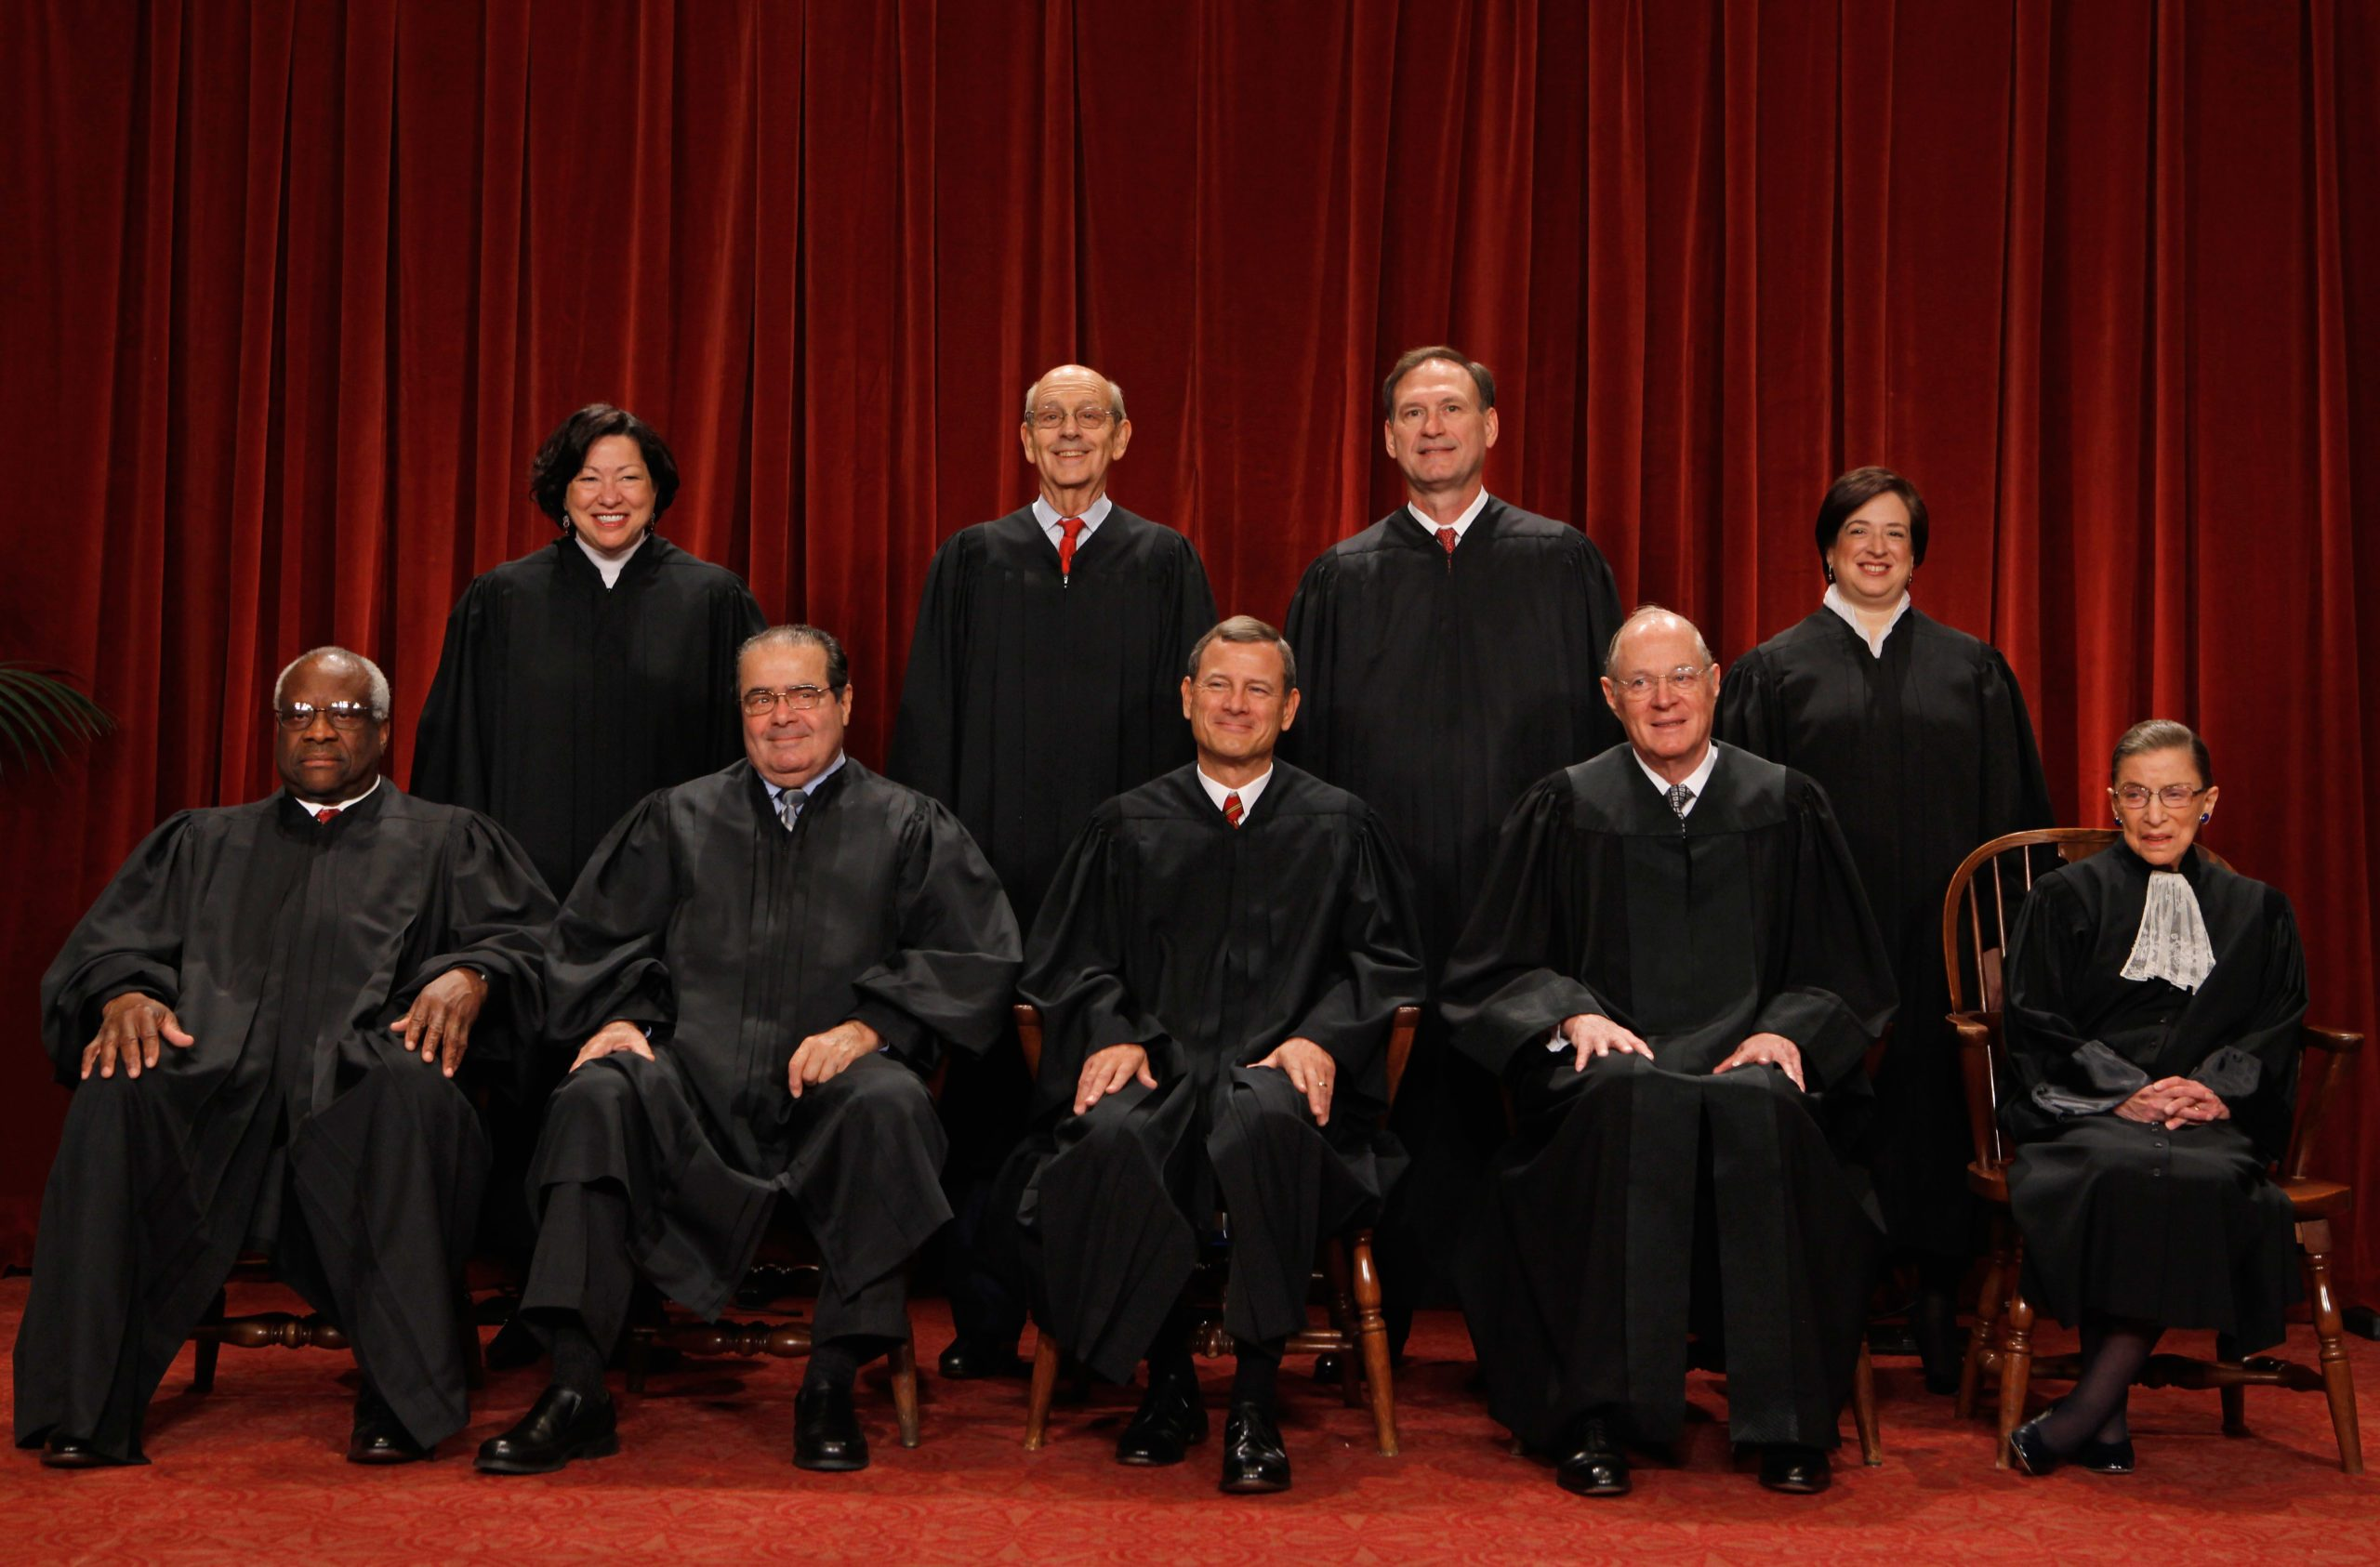 """New U.S. Supreme Court Poses For """"Class Photo"""""""